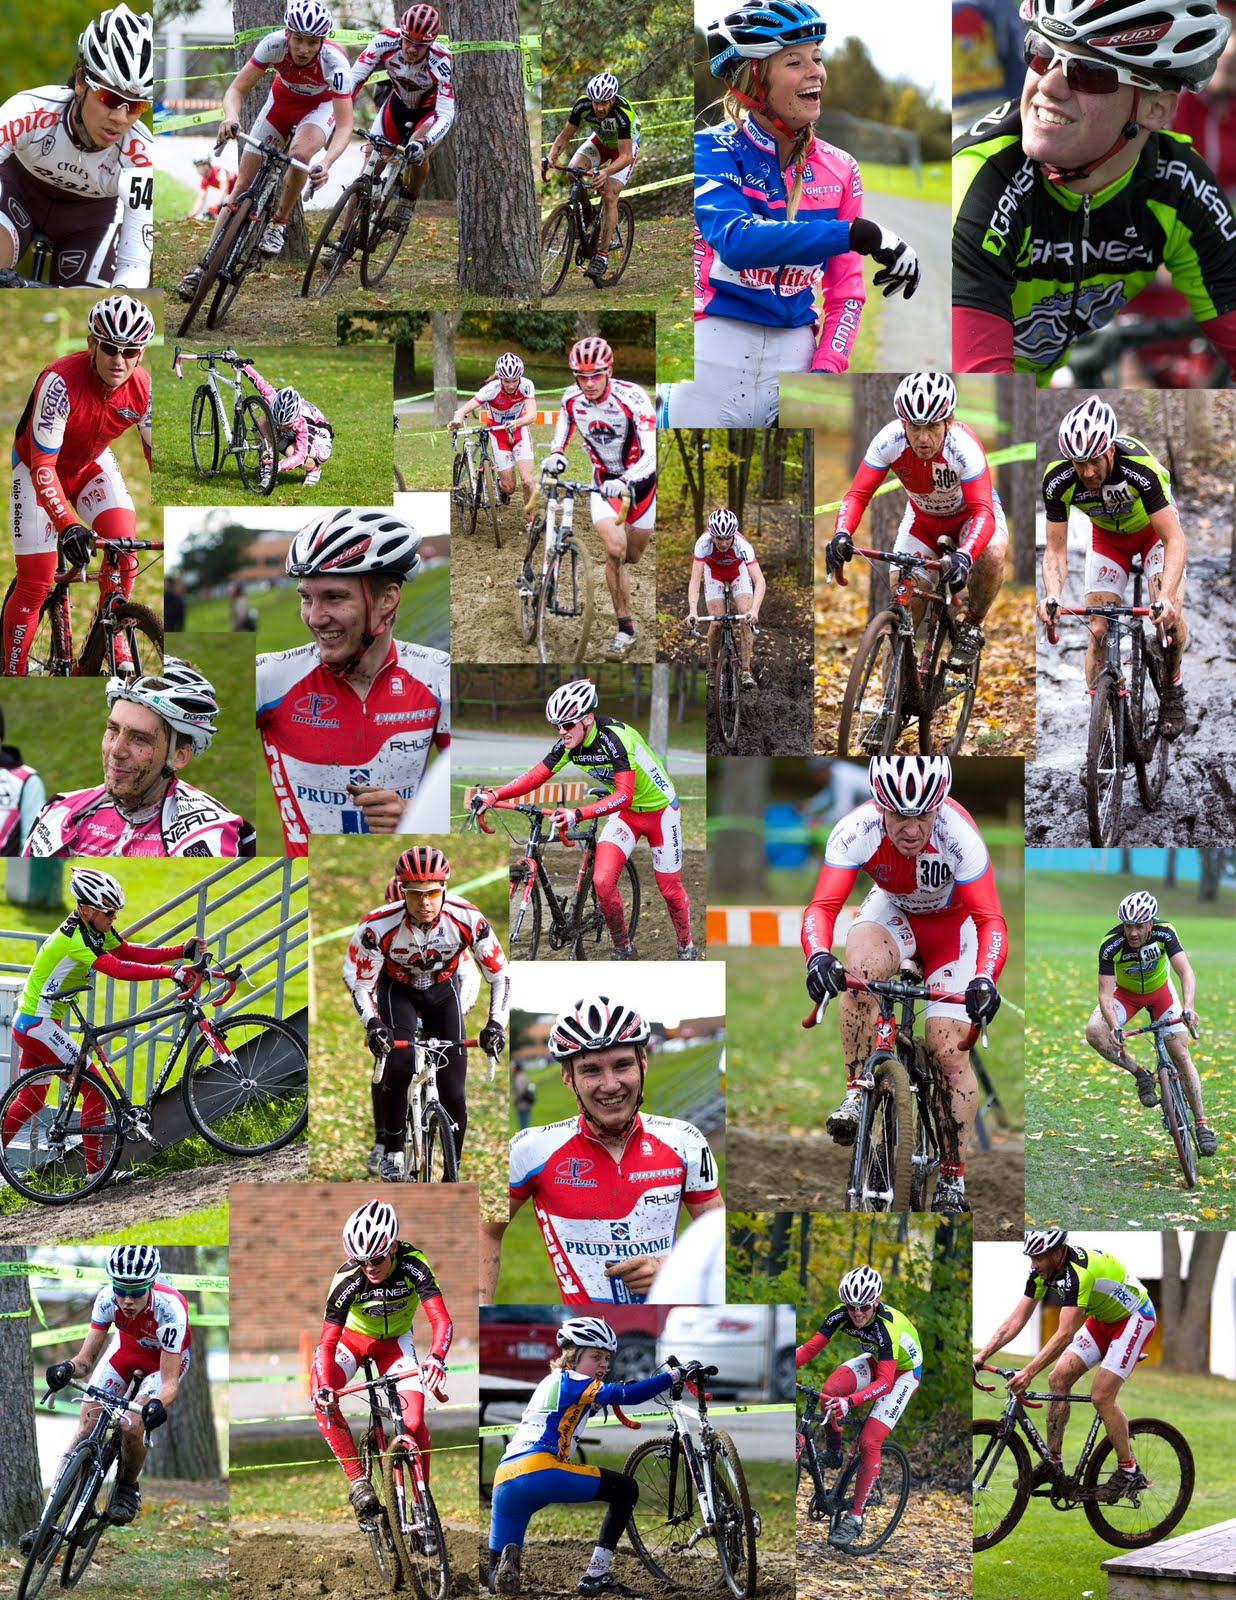 Veloselect racing team 2018 cowansville for Club piscine cowansville